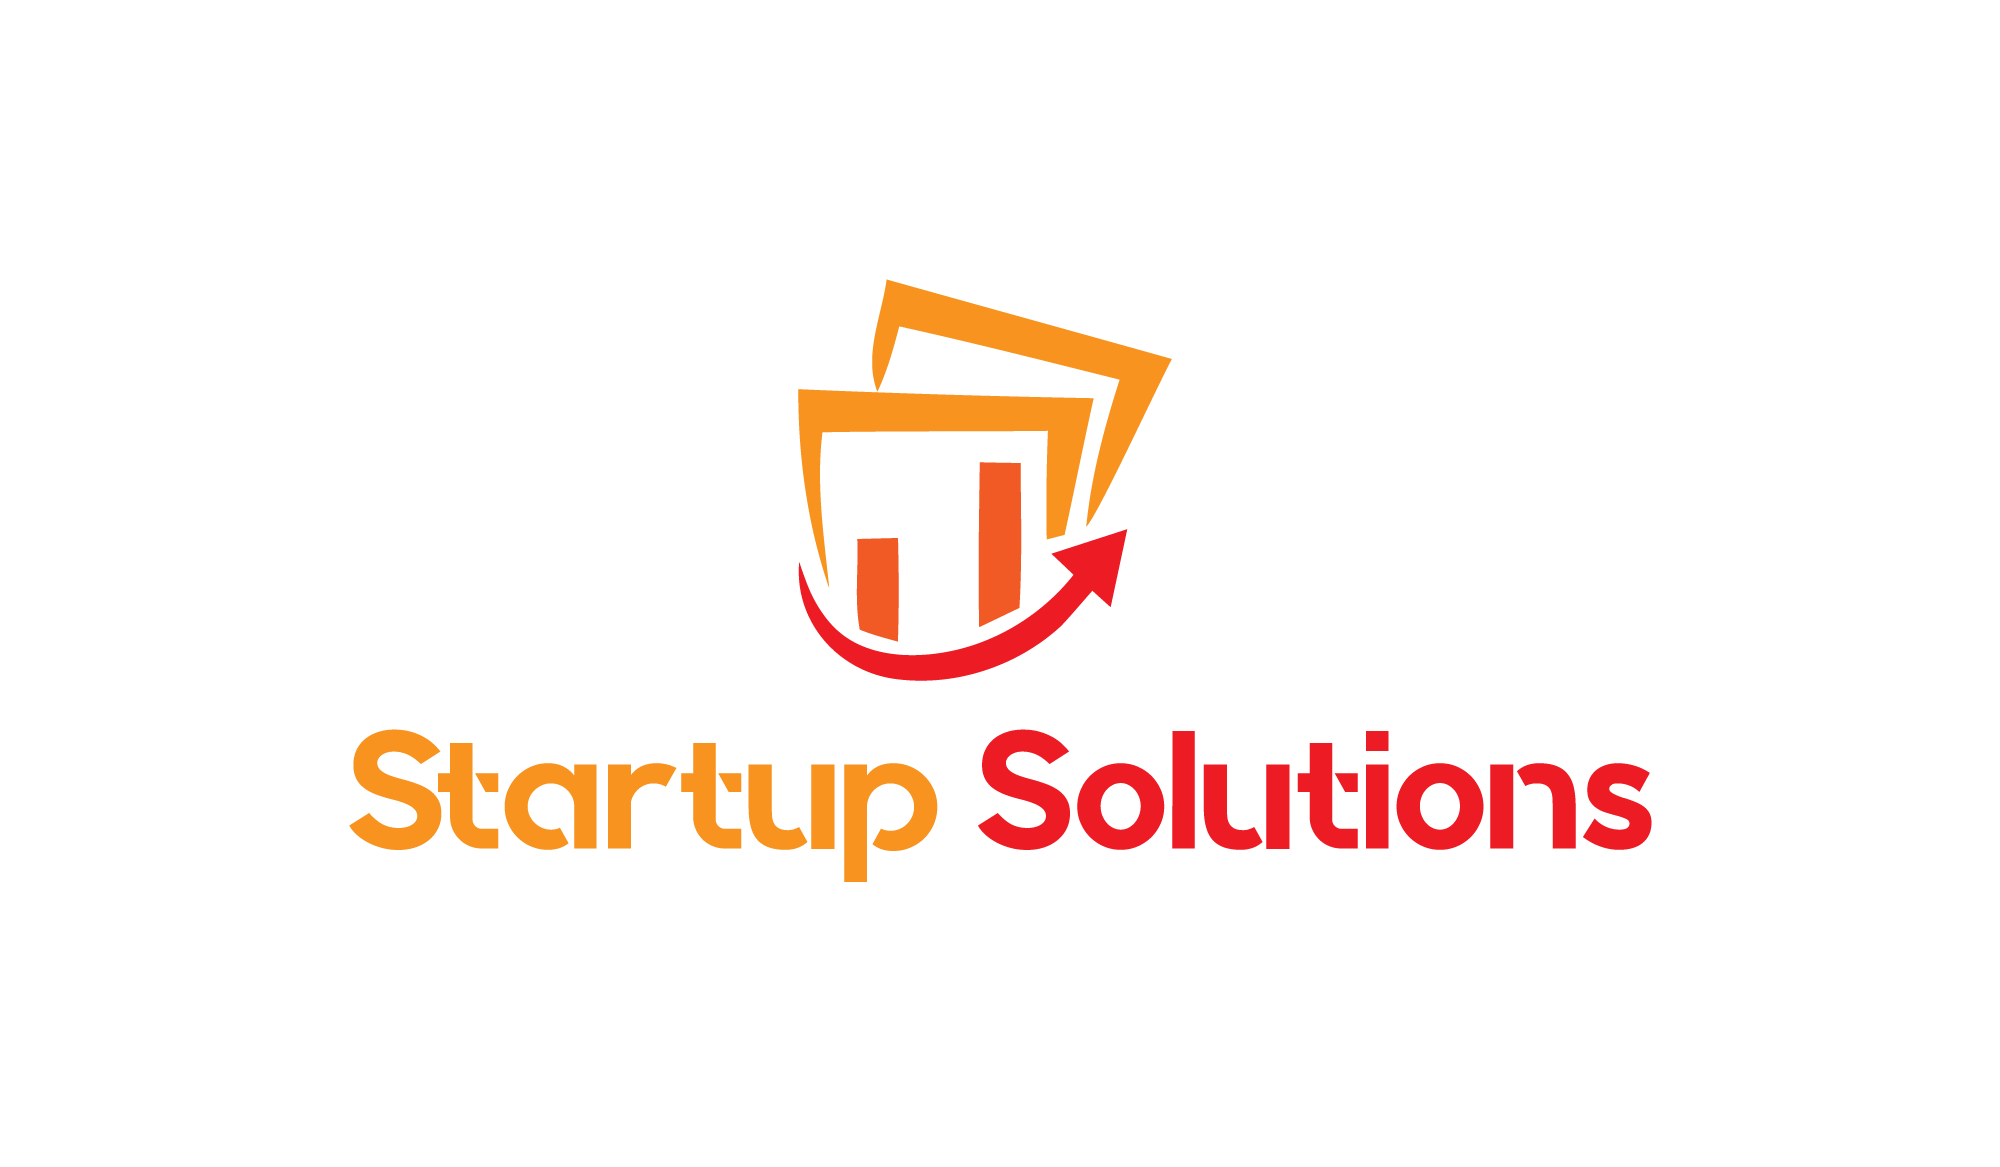 startup solutions-03.png